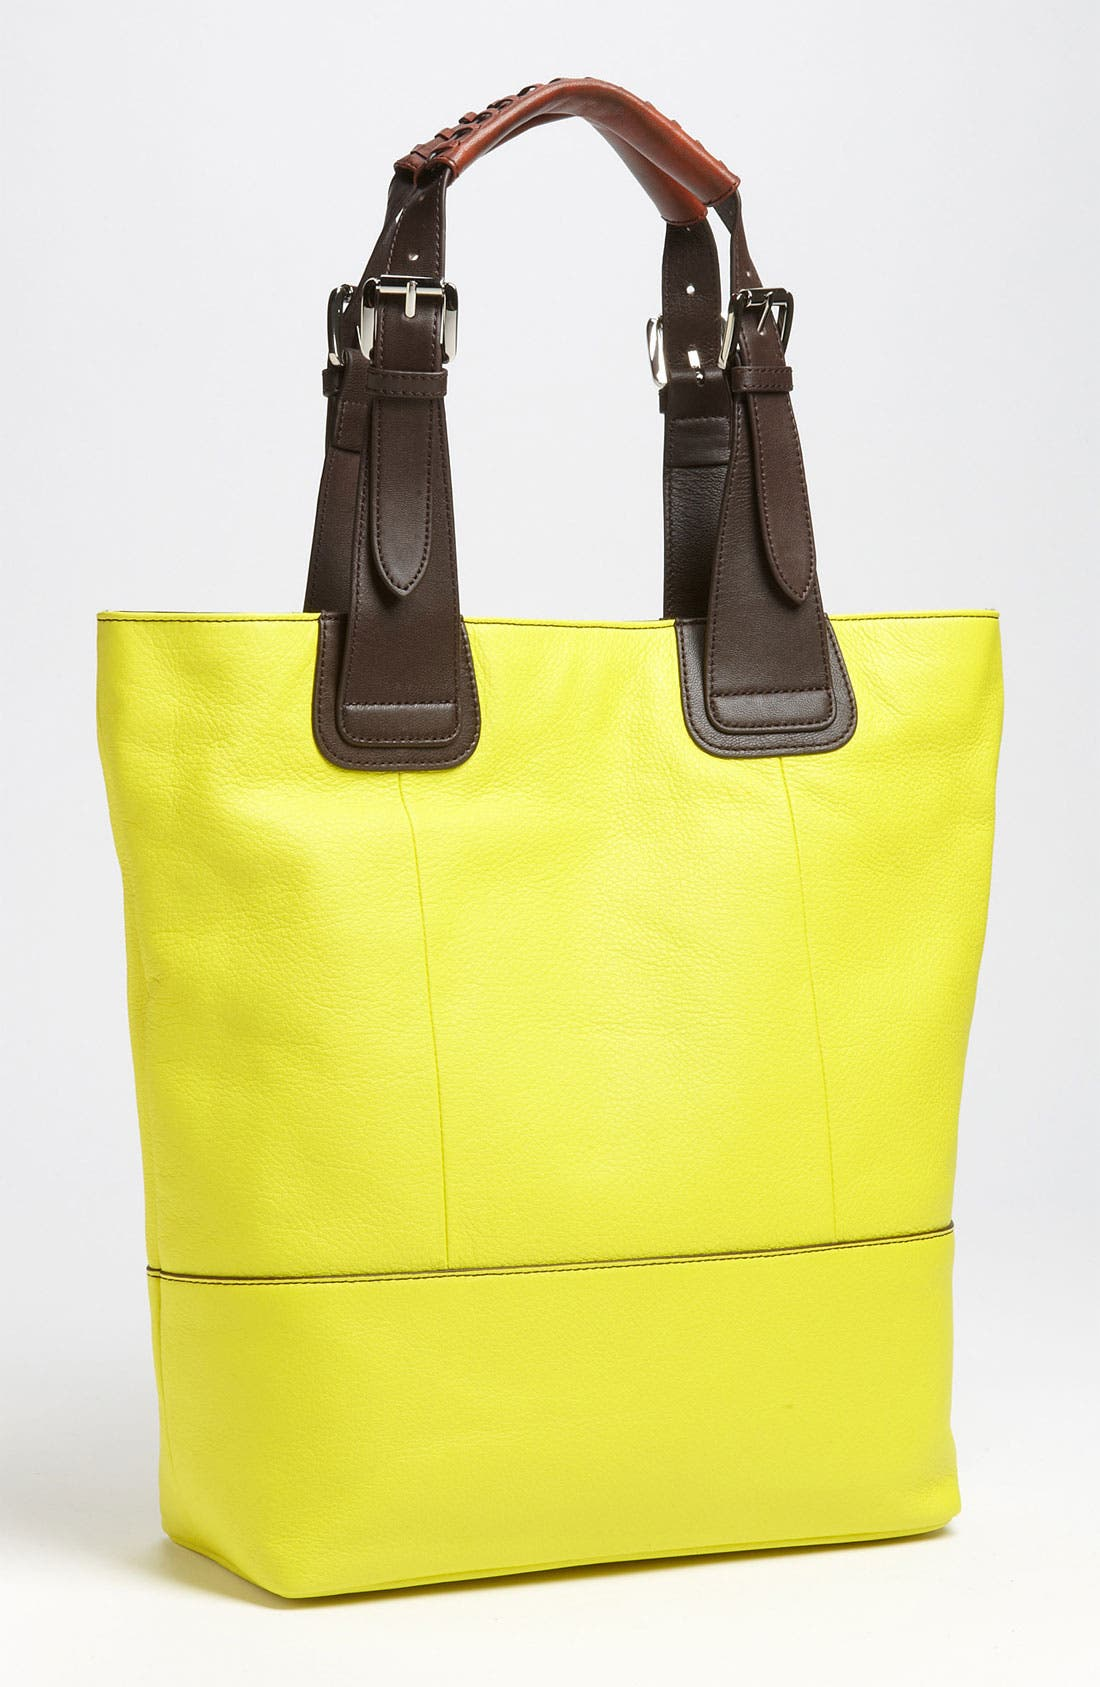 Alternate Image 1 Selected - Steven by Steve Madden Leather Tote